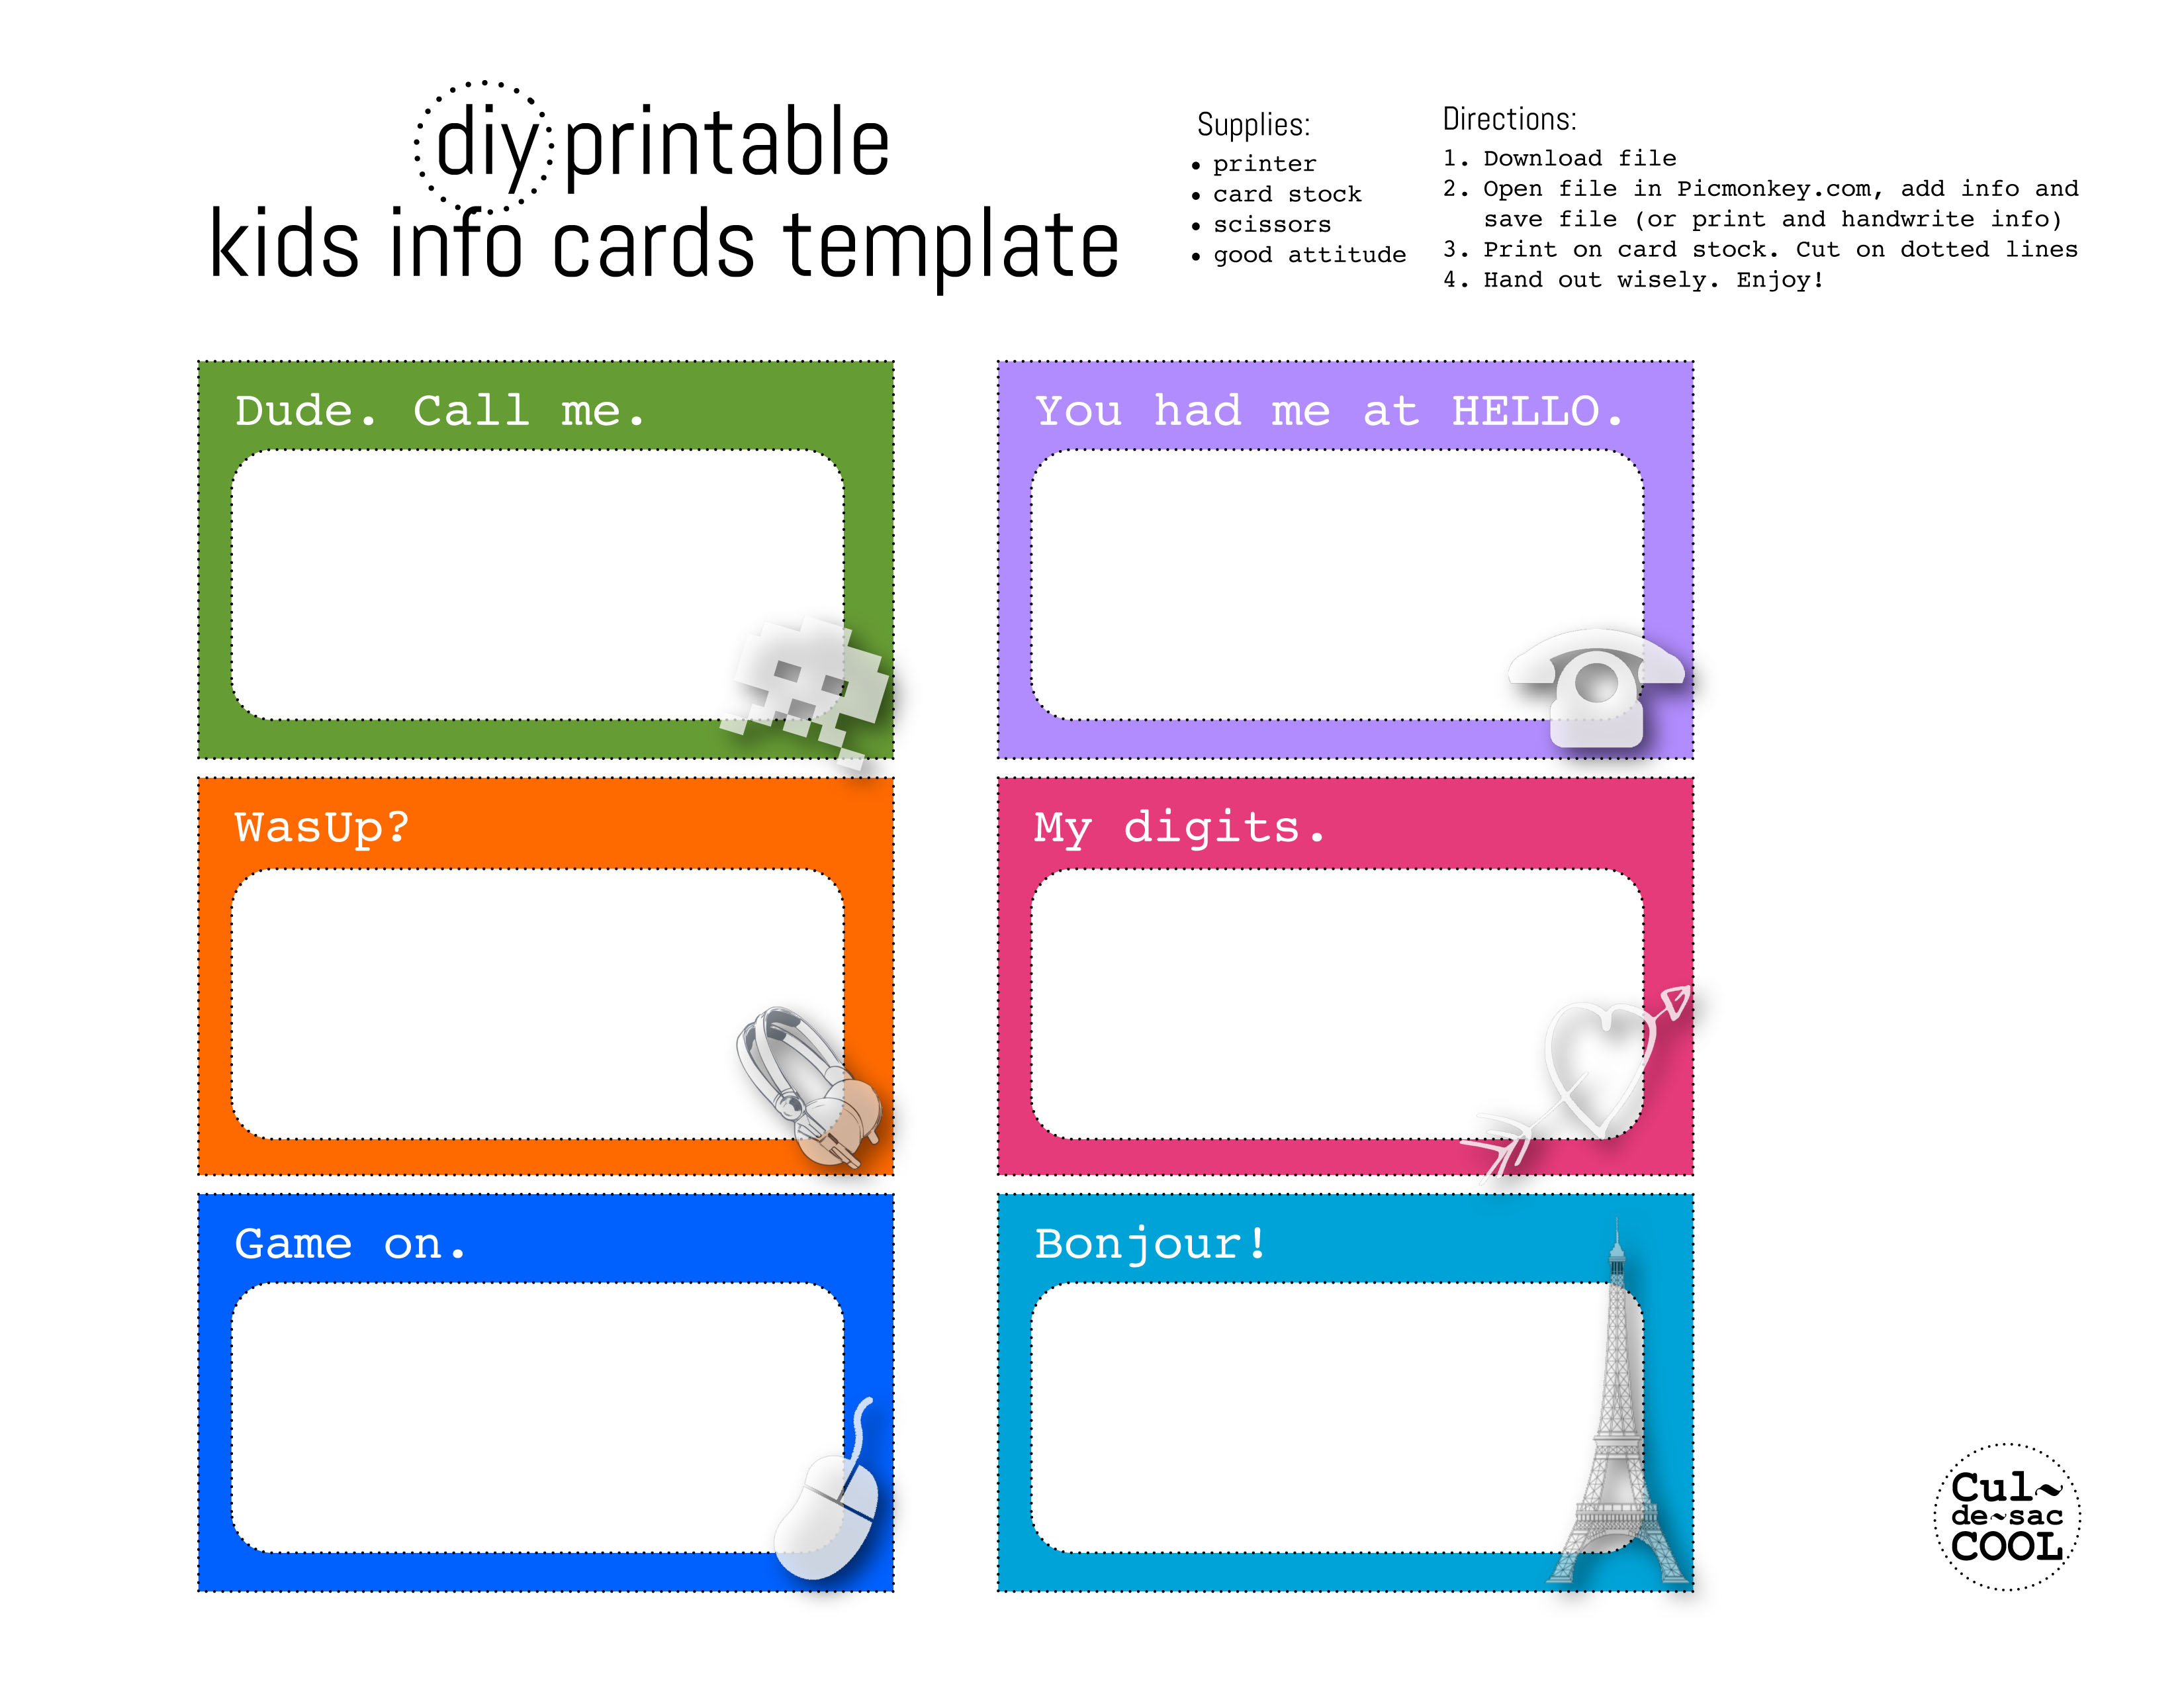 Adorable image with regard to information cards template